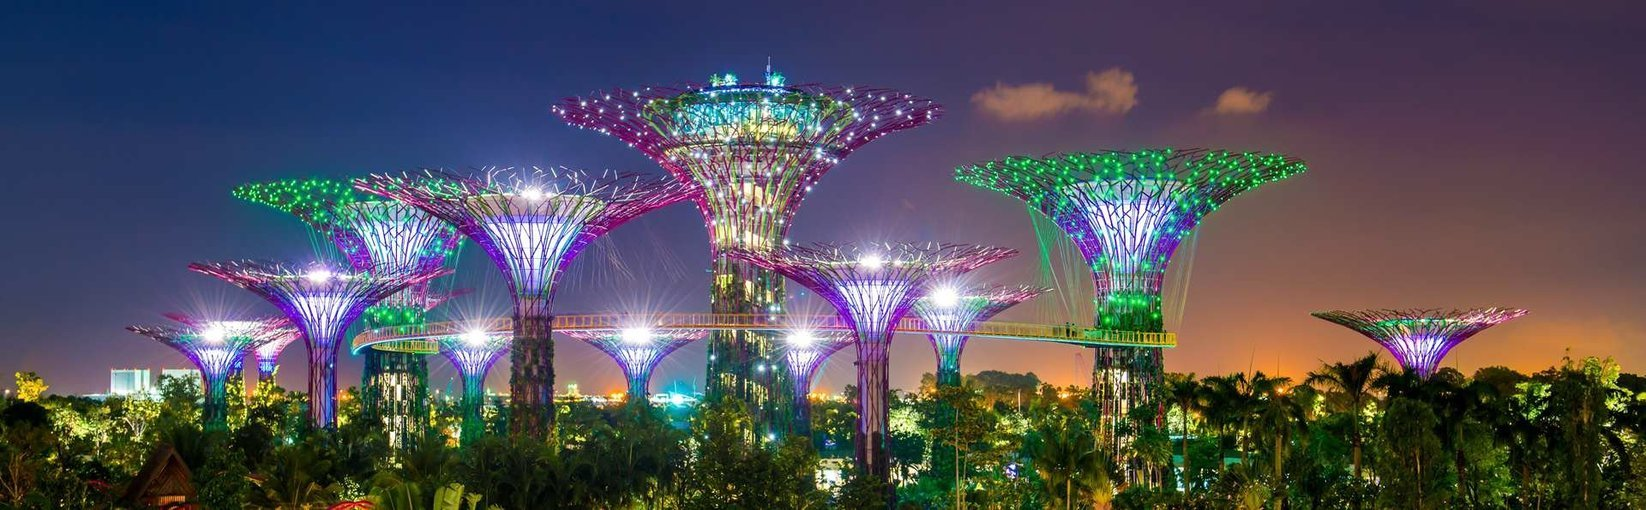 Gardens by the Bay, Sightseeing in Singapore - Tour